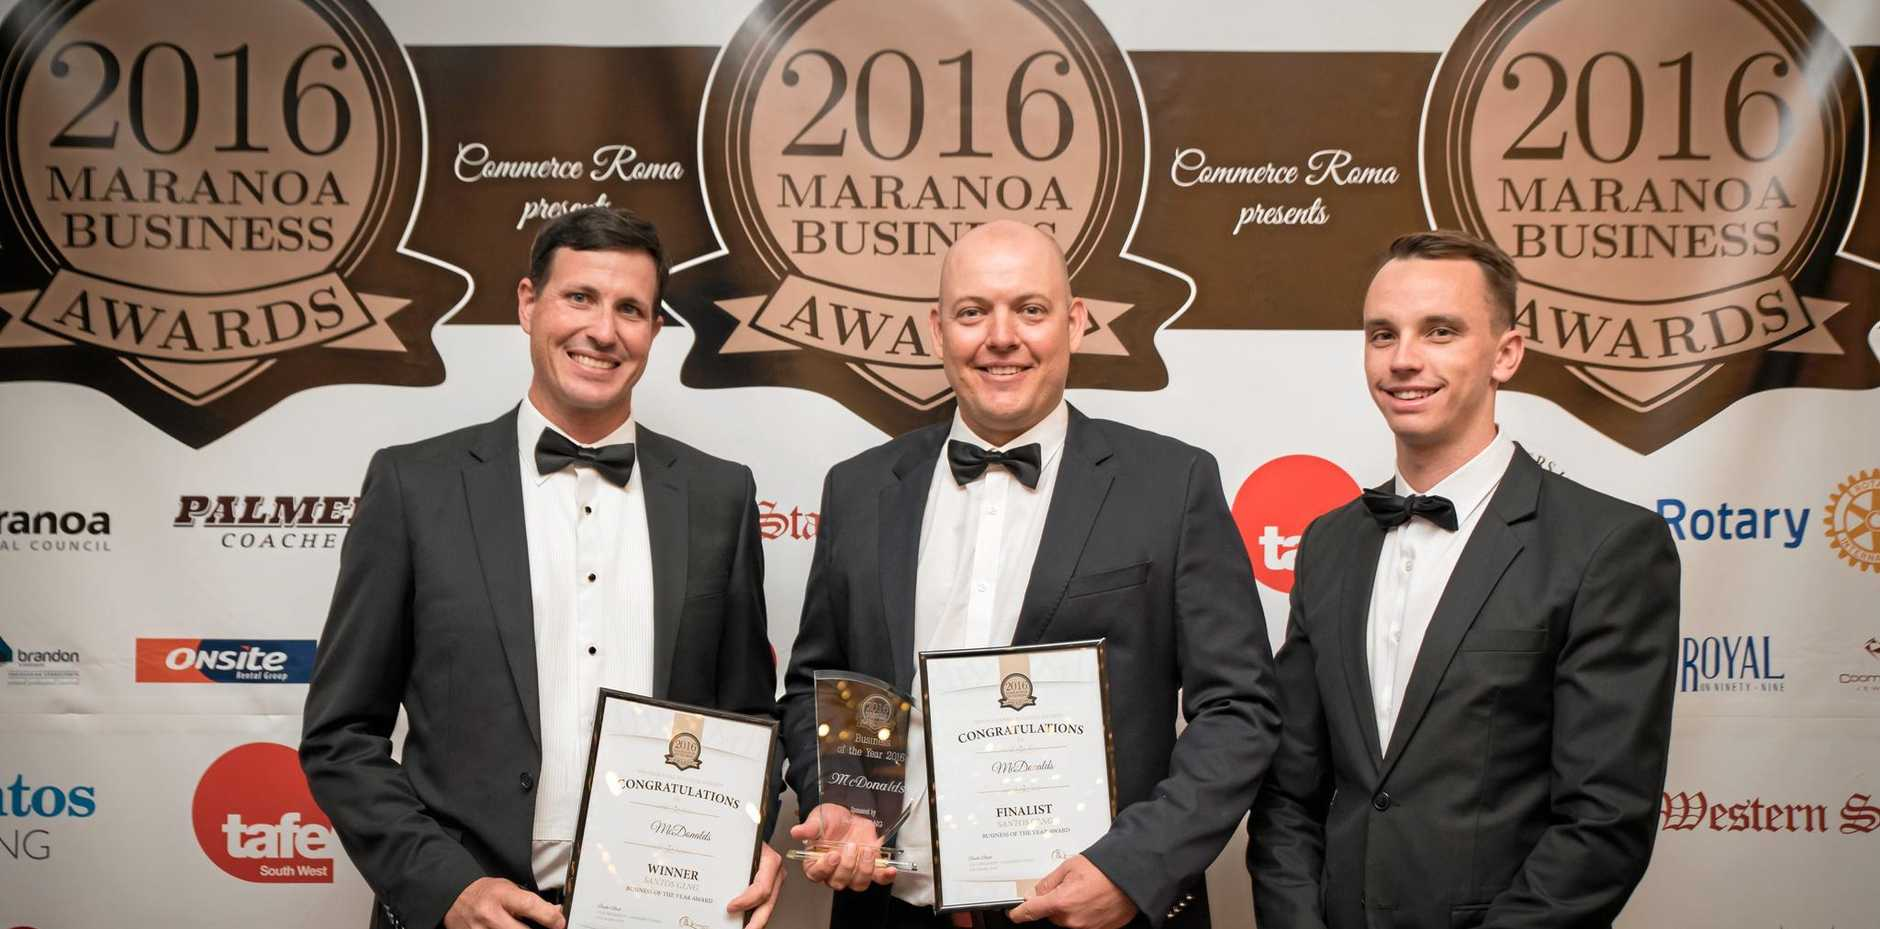 BIG WIN: Marc Benson and the team from McDonald's Roma took out three awards at the Maranoa Business Awards on Saturday, including the Business of the Year. He's pictured here with Andrew Snars and Brodie Albeck.